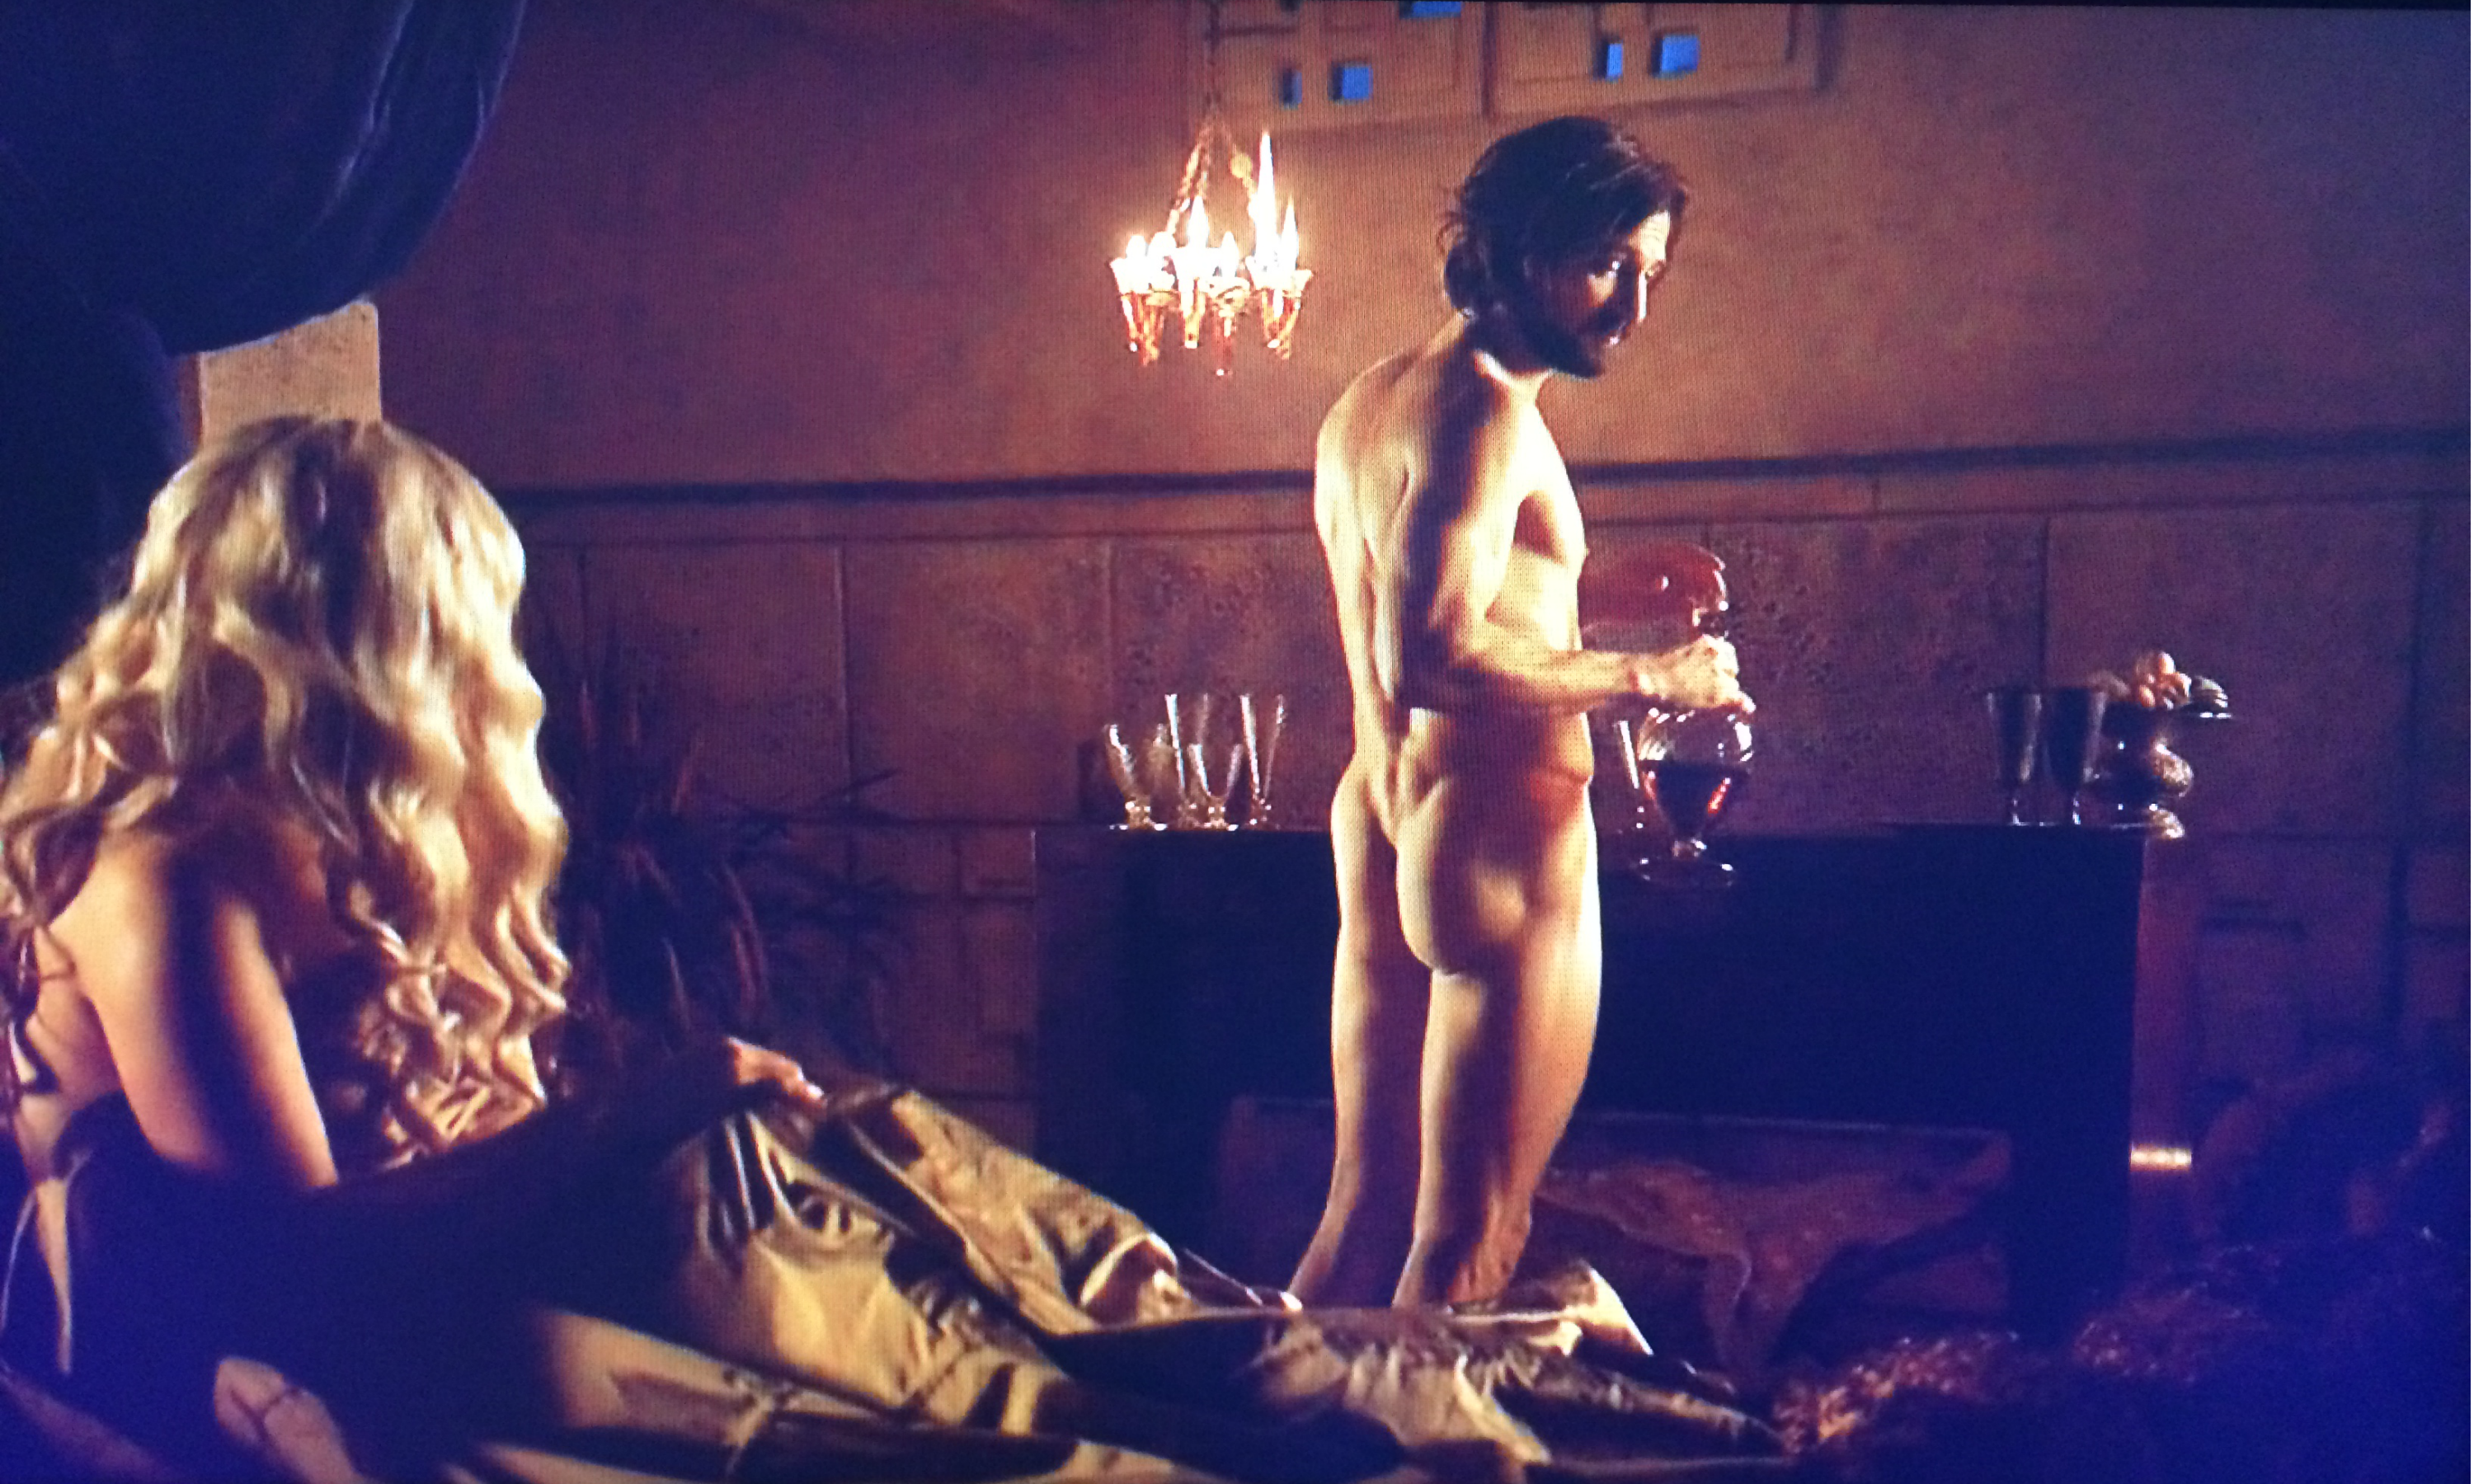 Game Of Thrones Featured A Consensual, Intimate Sex Scene